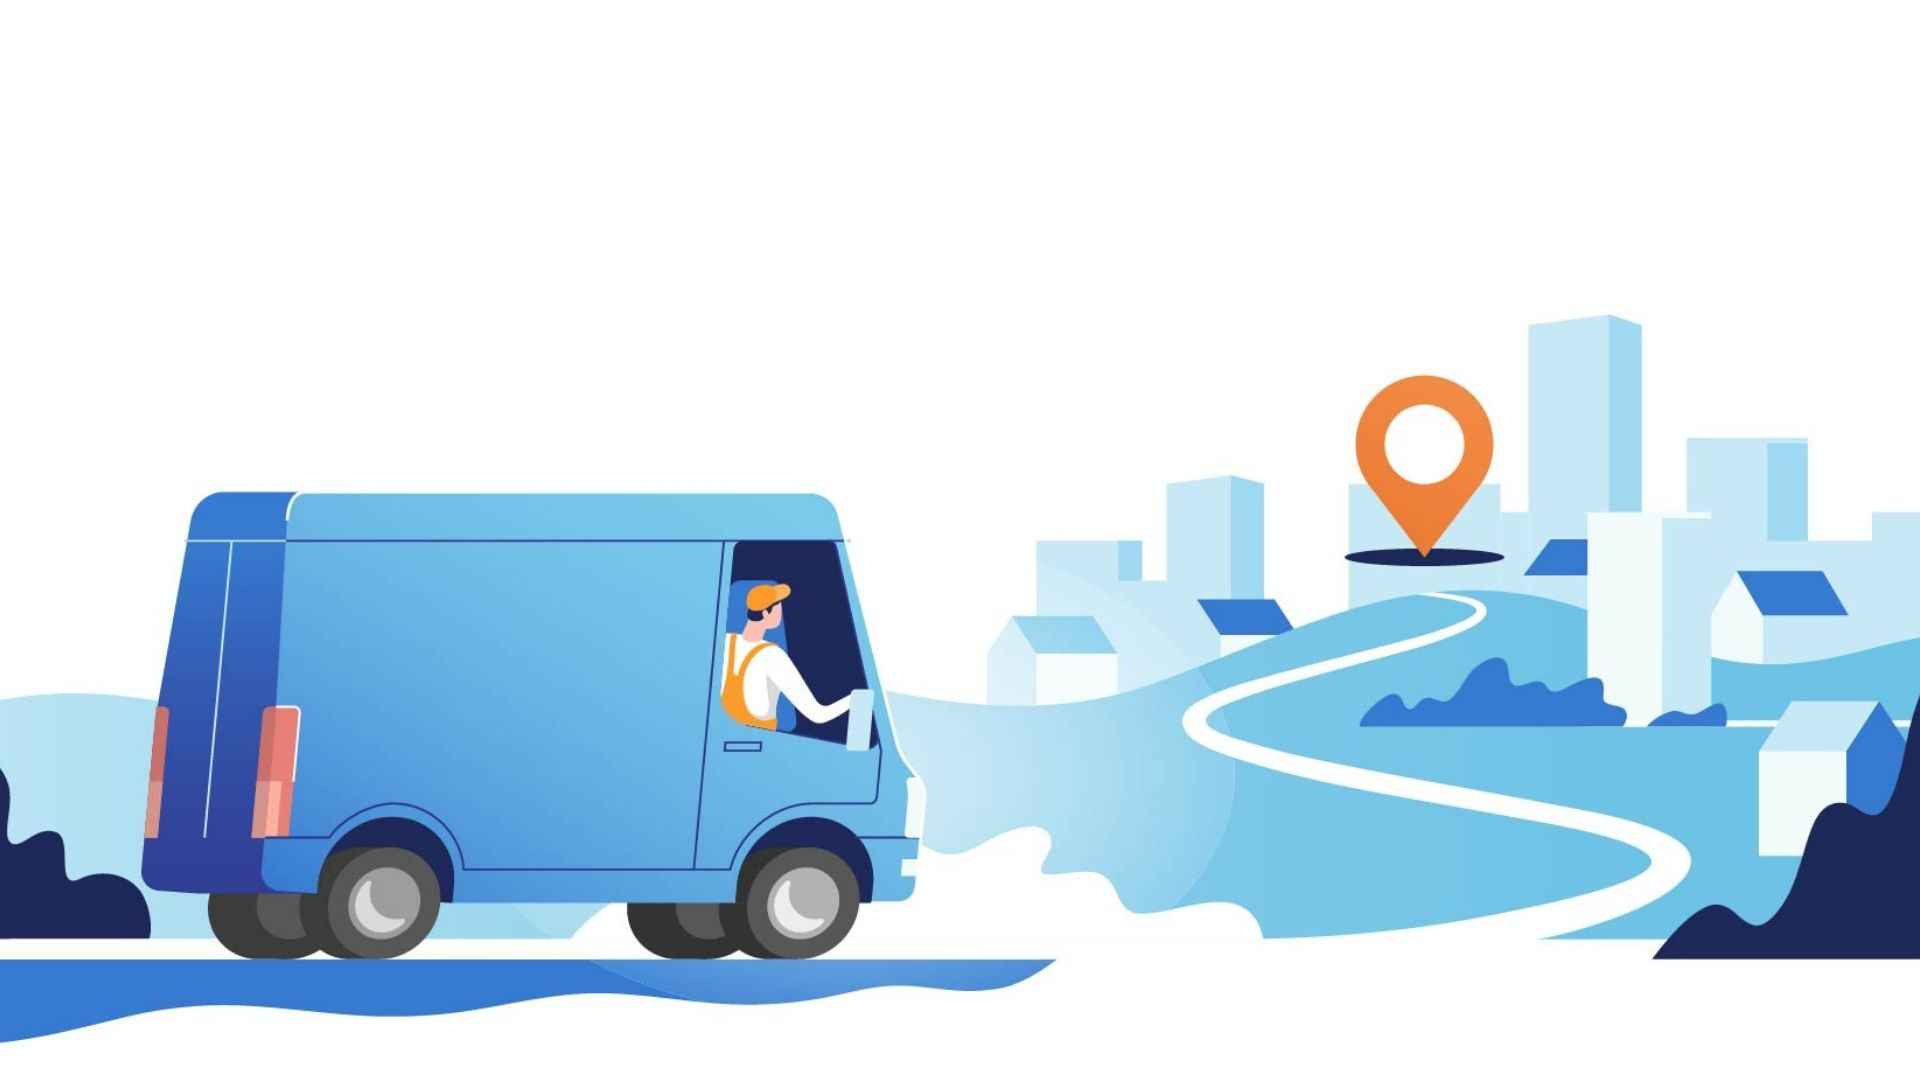 Animated video about your business - transport and logistics